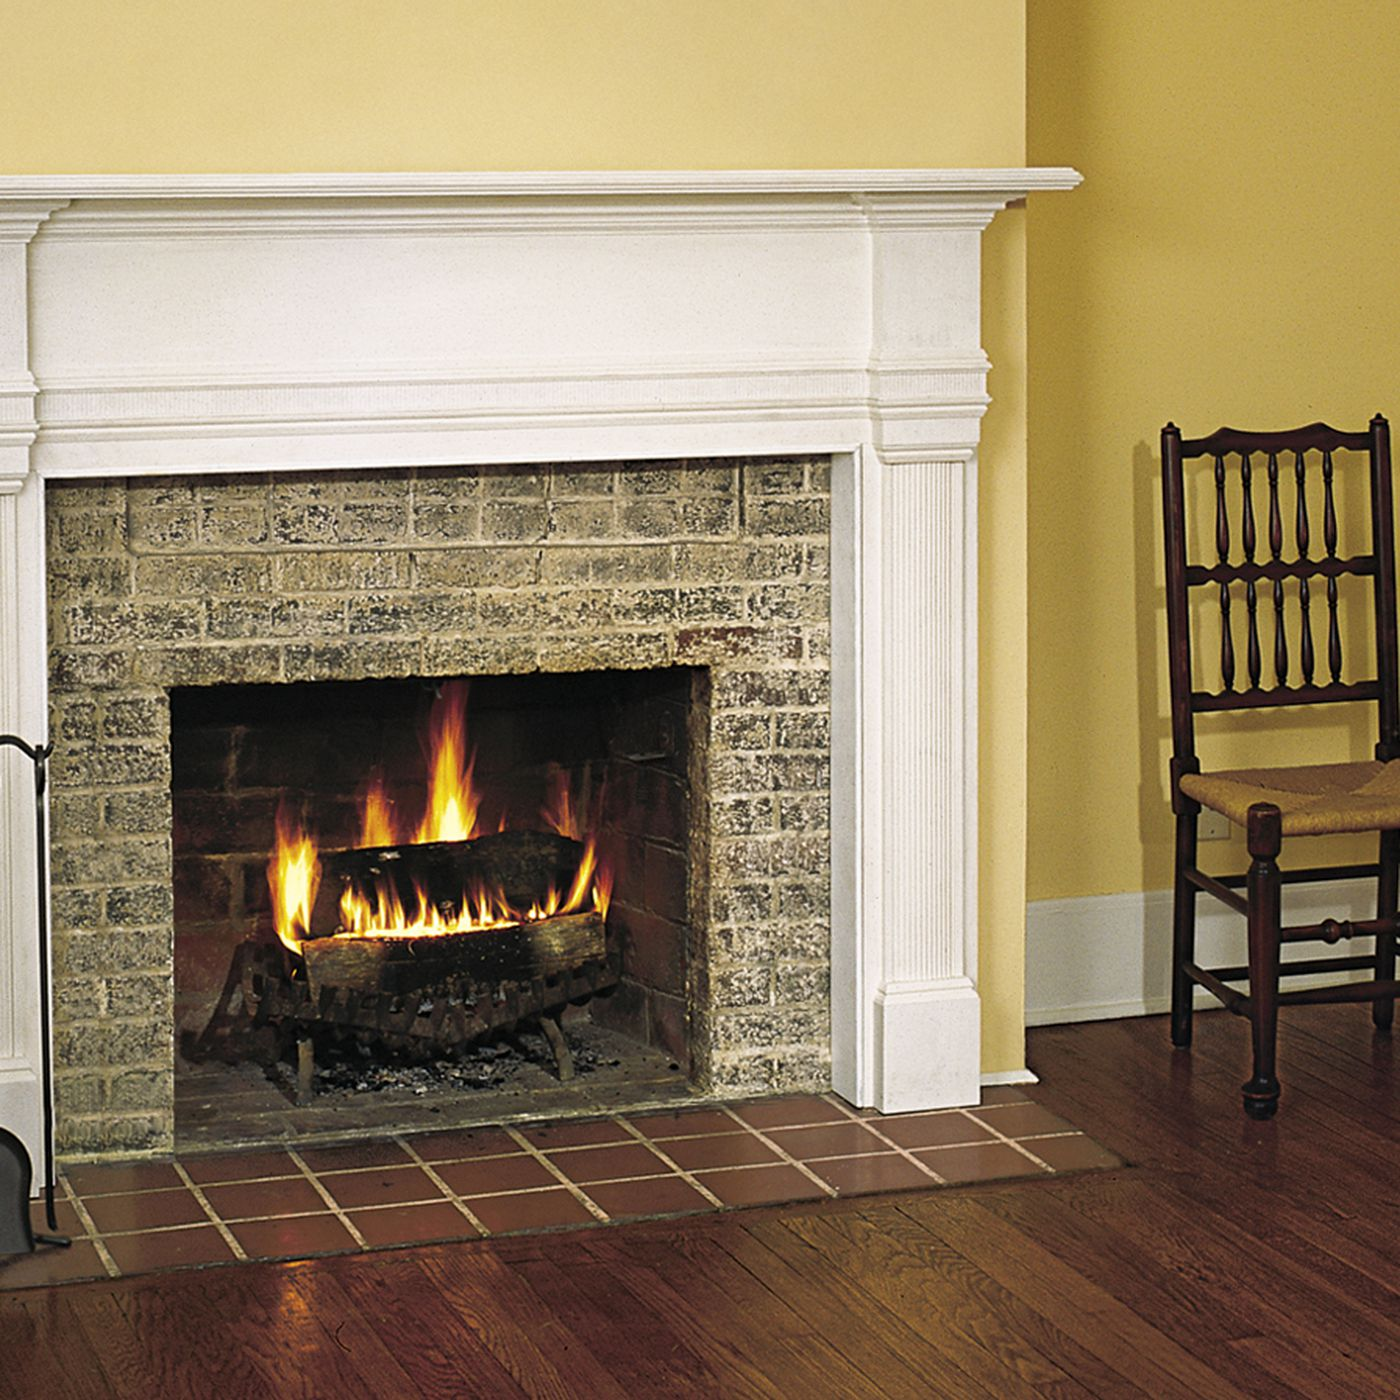 Fireplace Mantel Installation This Old House